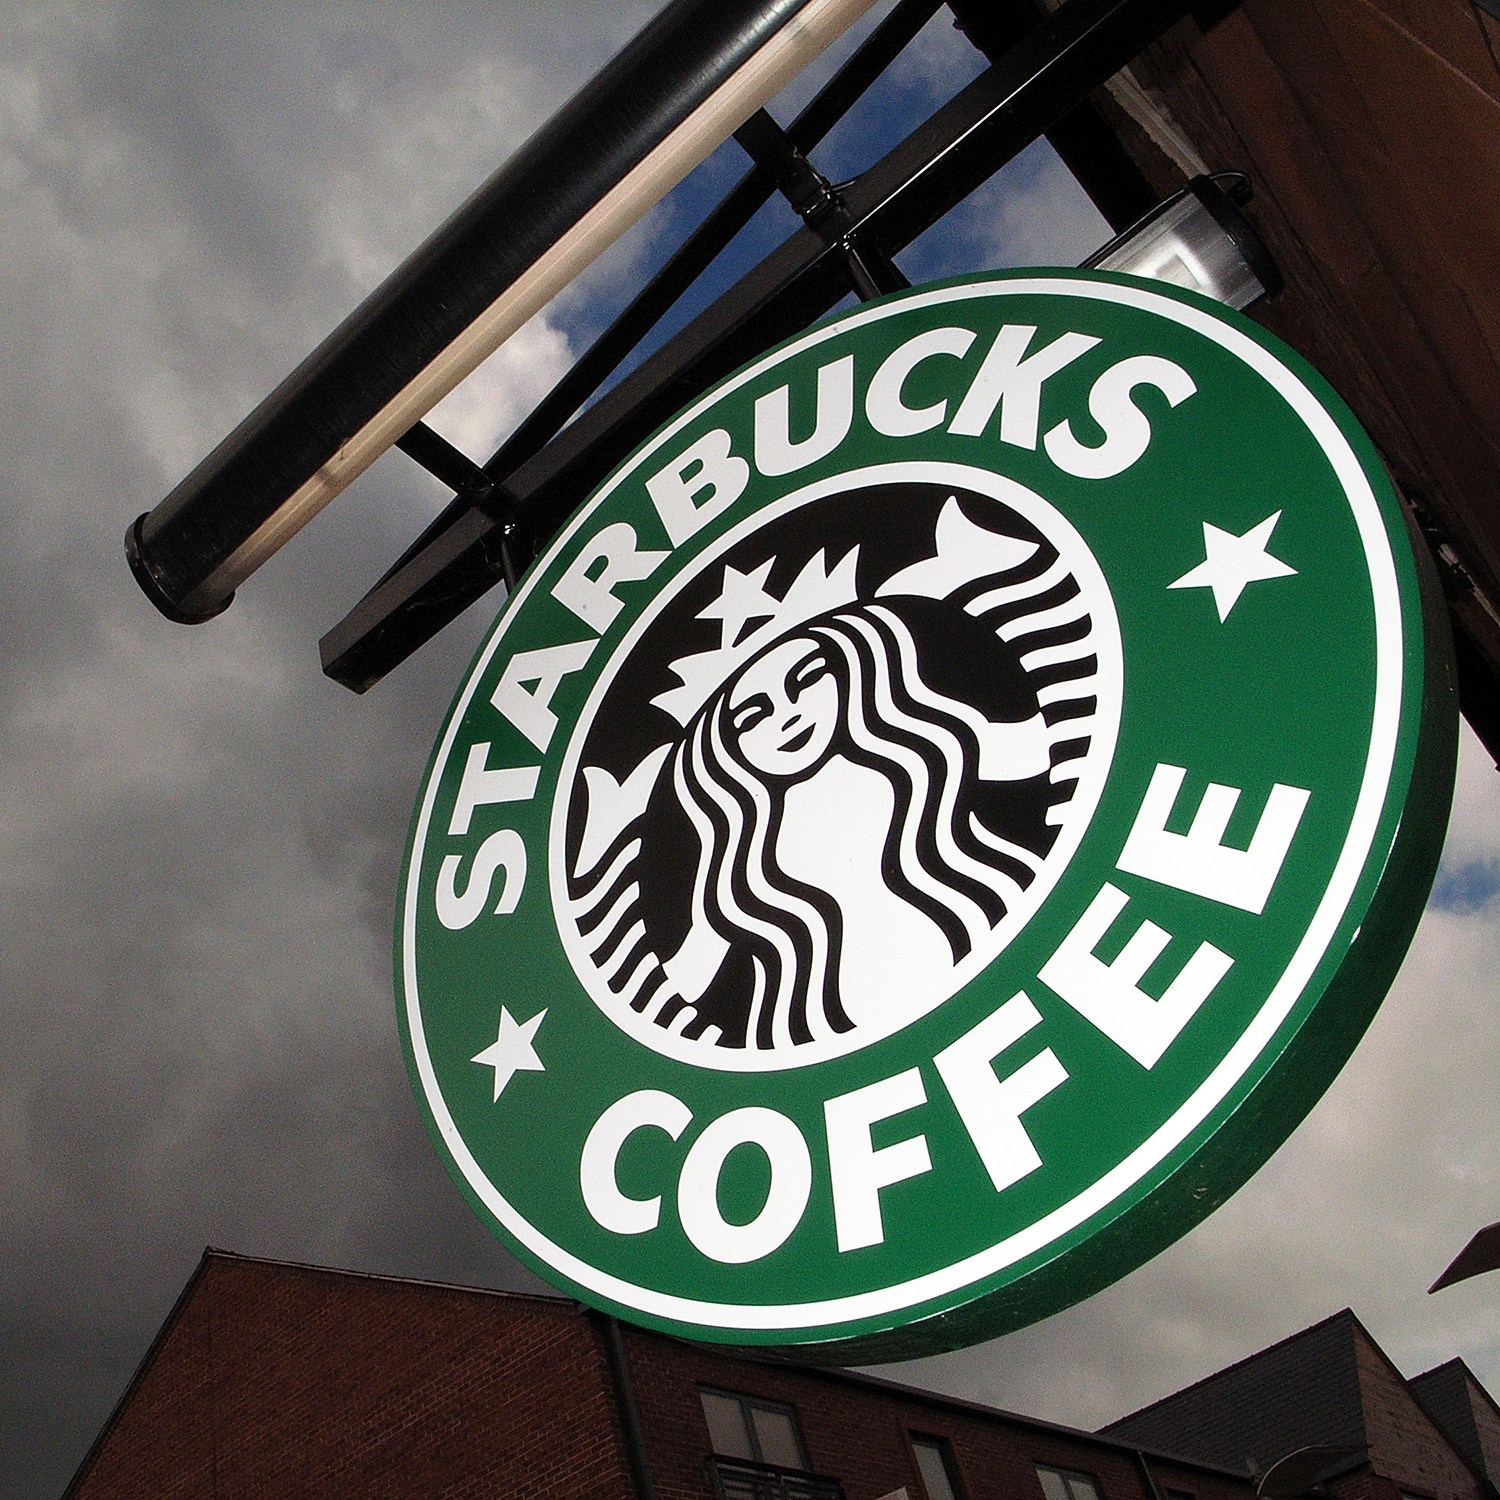 Starbucks Is Offering Customers Free Coffee for a Month, But There's a Catch